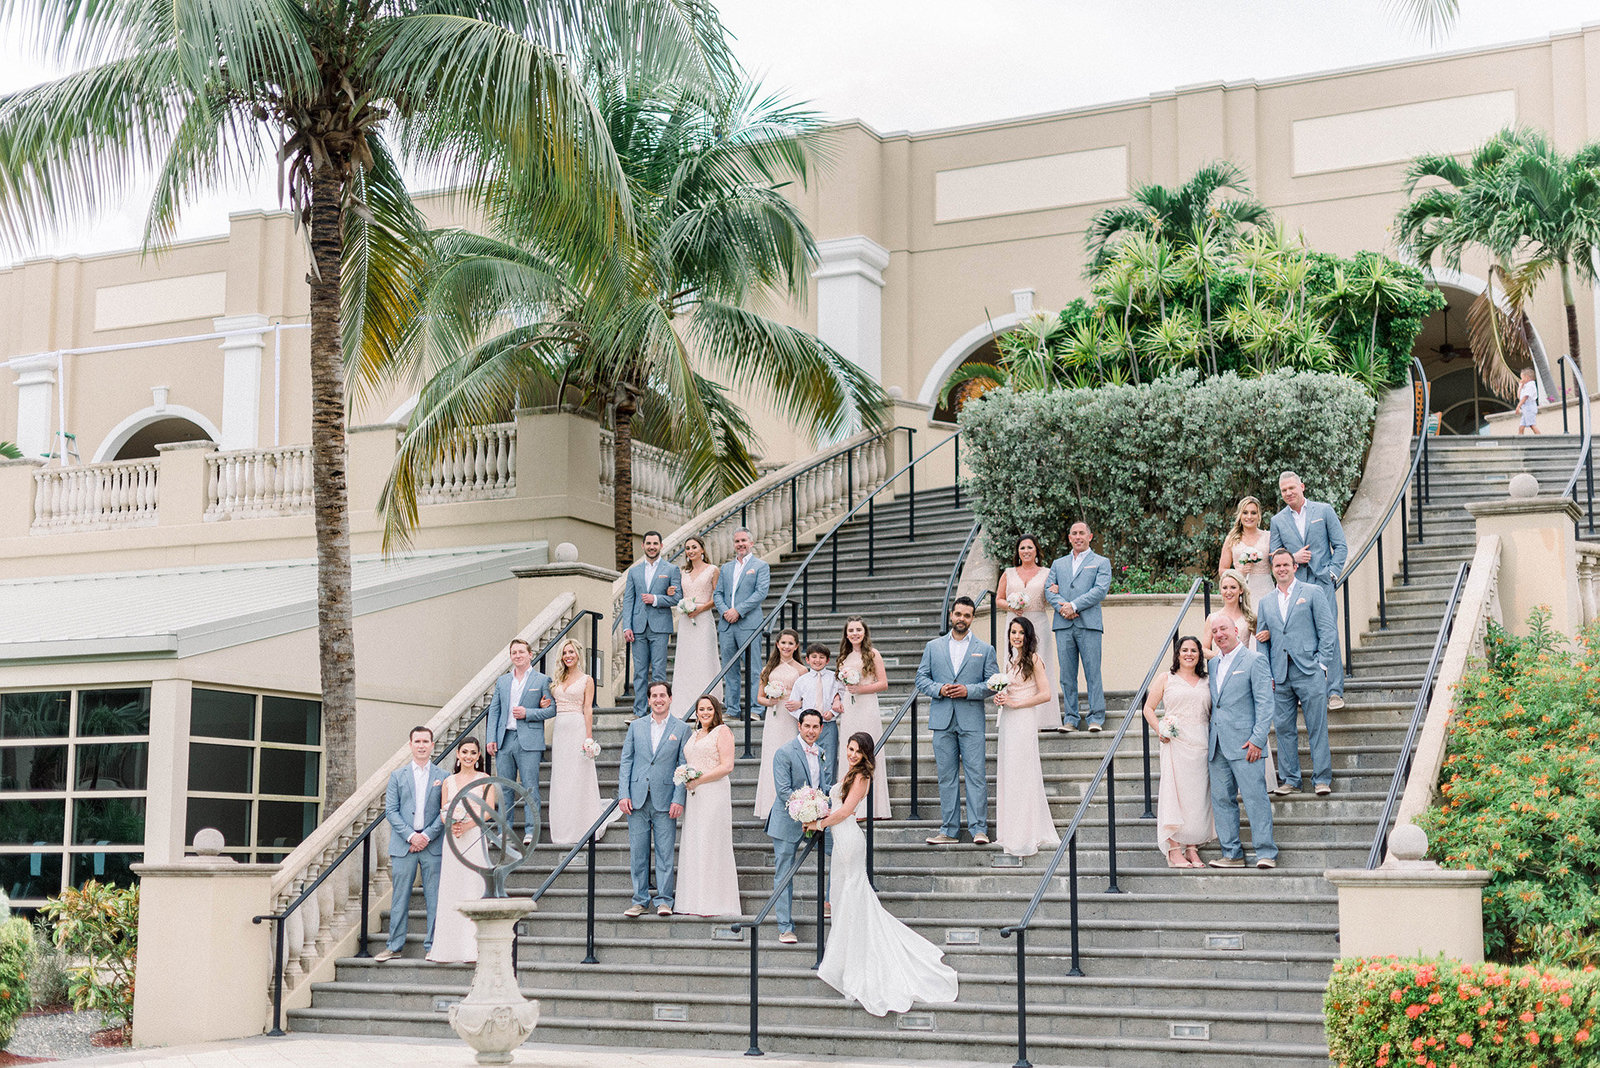 20180512-Pura-Soul-Photo-Ritz-Grand-Cayman-Wedding-54